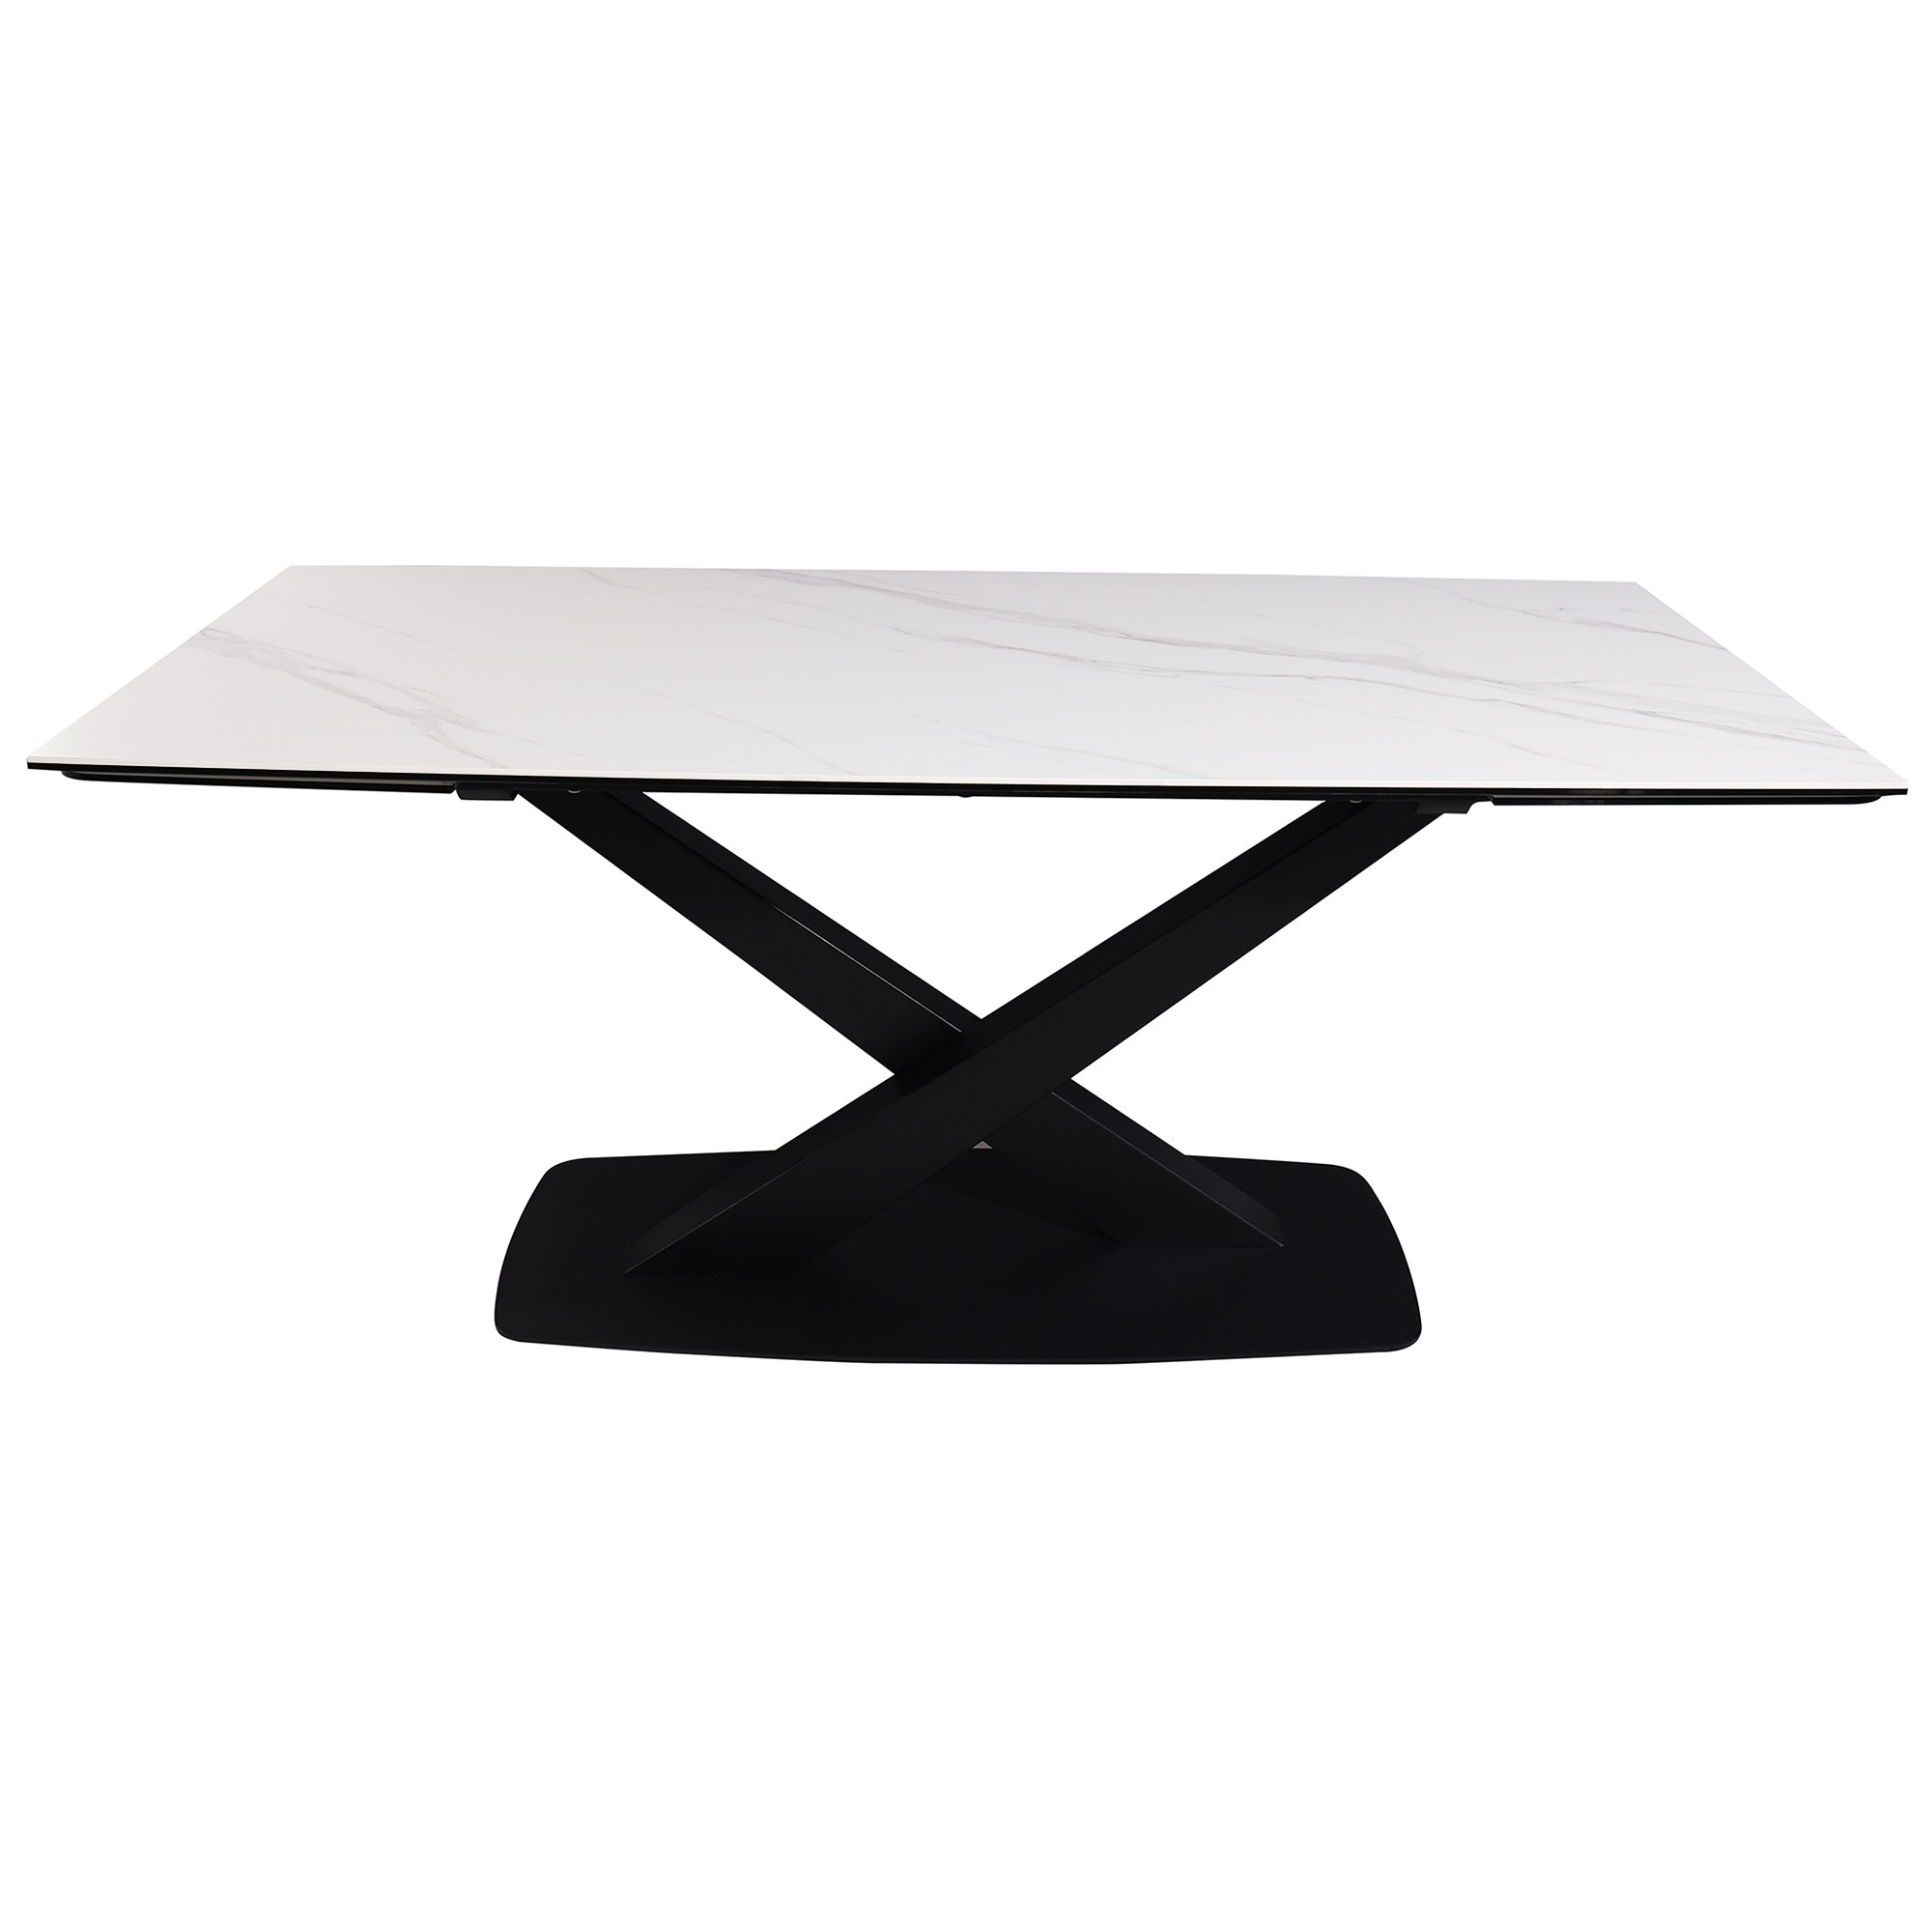 Cabot Ceramic Topped Metal Extension Dining Table, 180-260cm